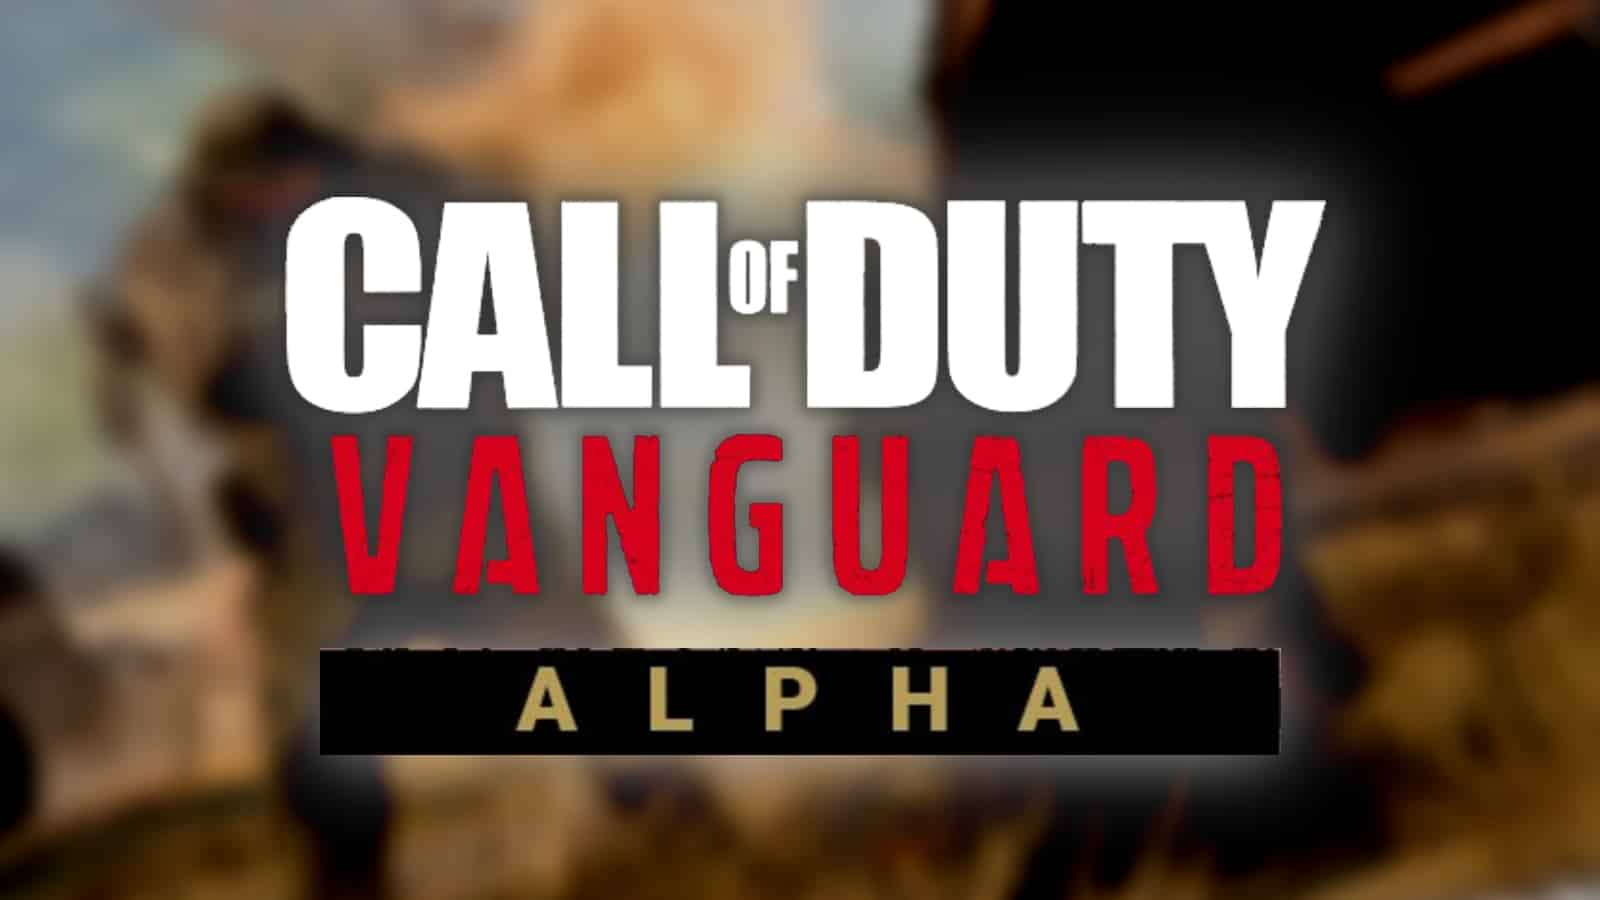 How to play COD Vanguard Playstation Alpha: Dates, Download, More